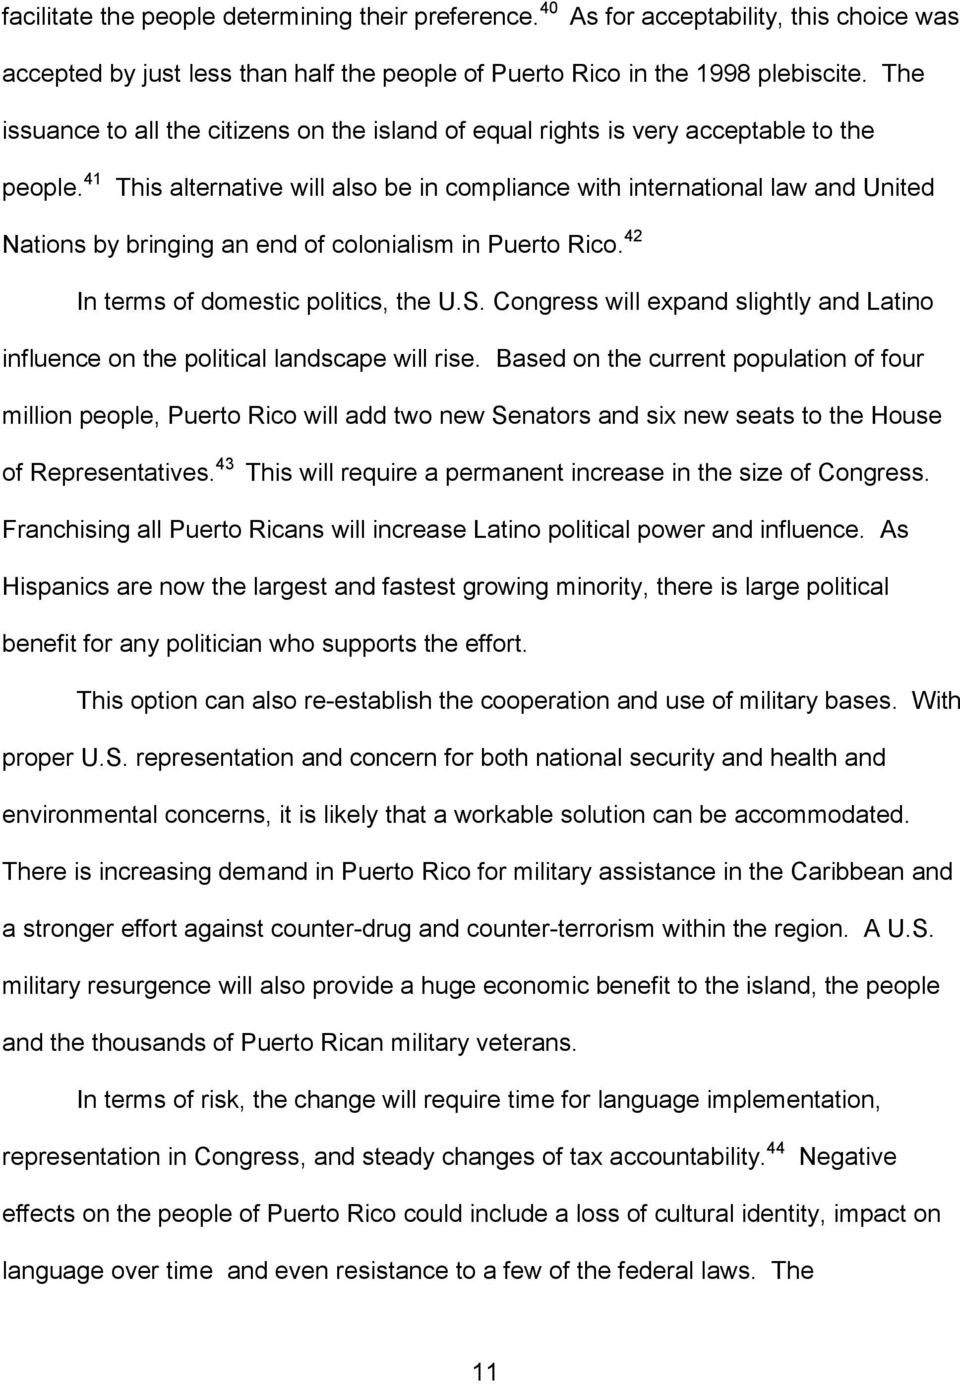 41 This alternative will also be in compliance with international law and United Nations by bringing an end of colonialism in Puerto Rico. 42 In terms of domestic politics, the U.S.